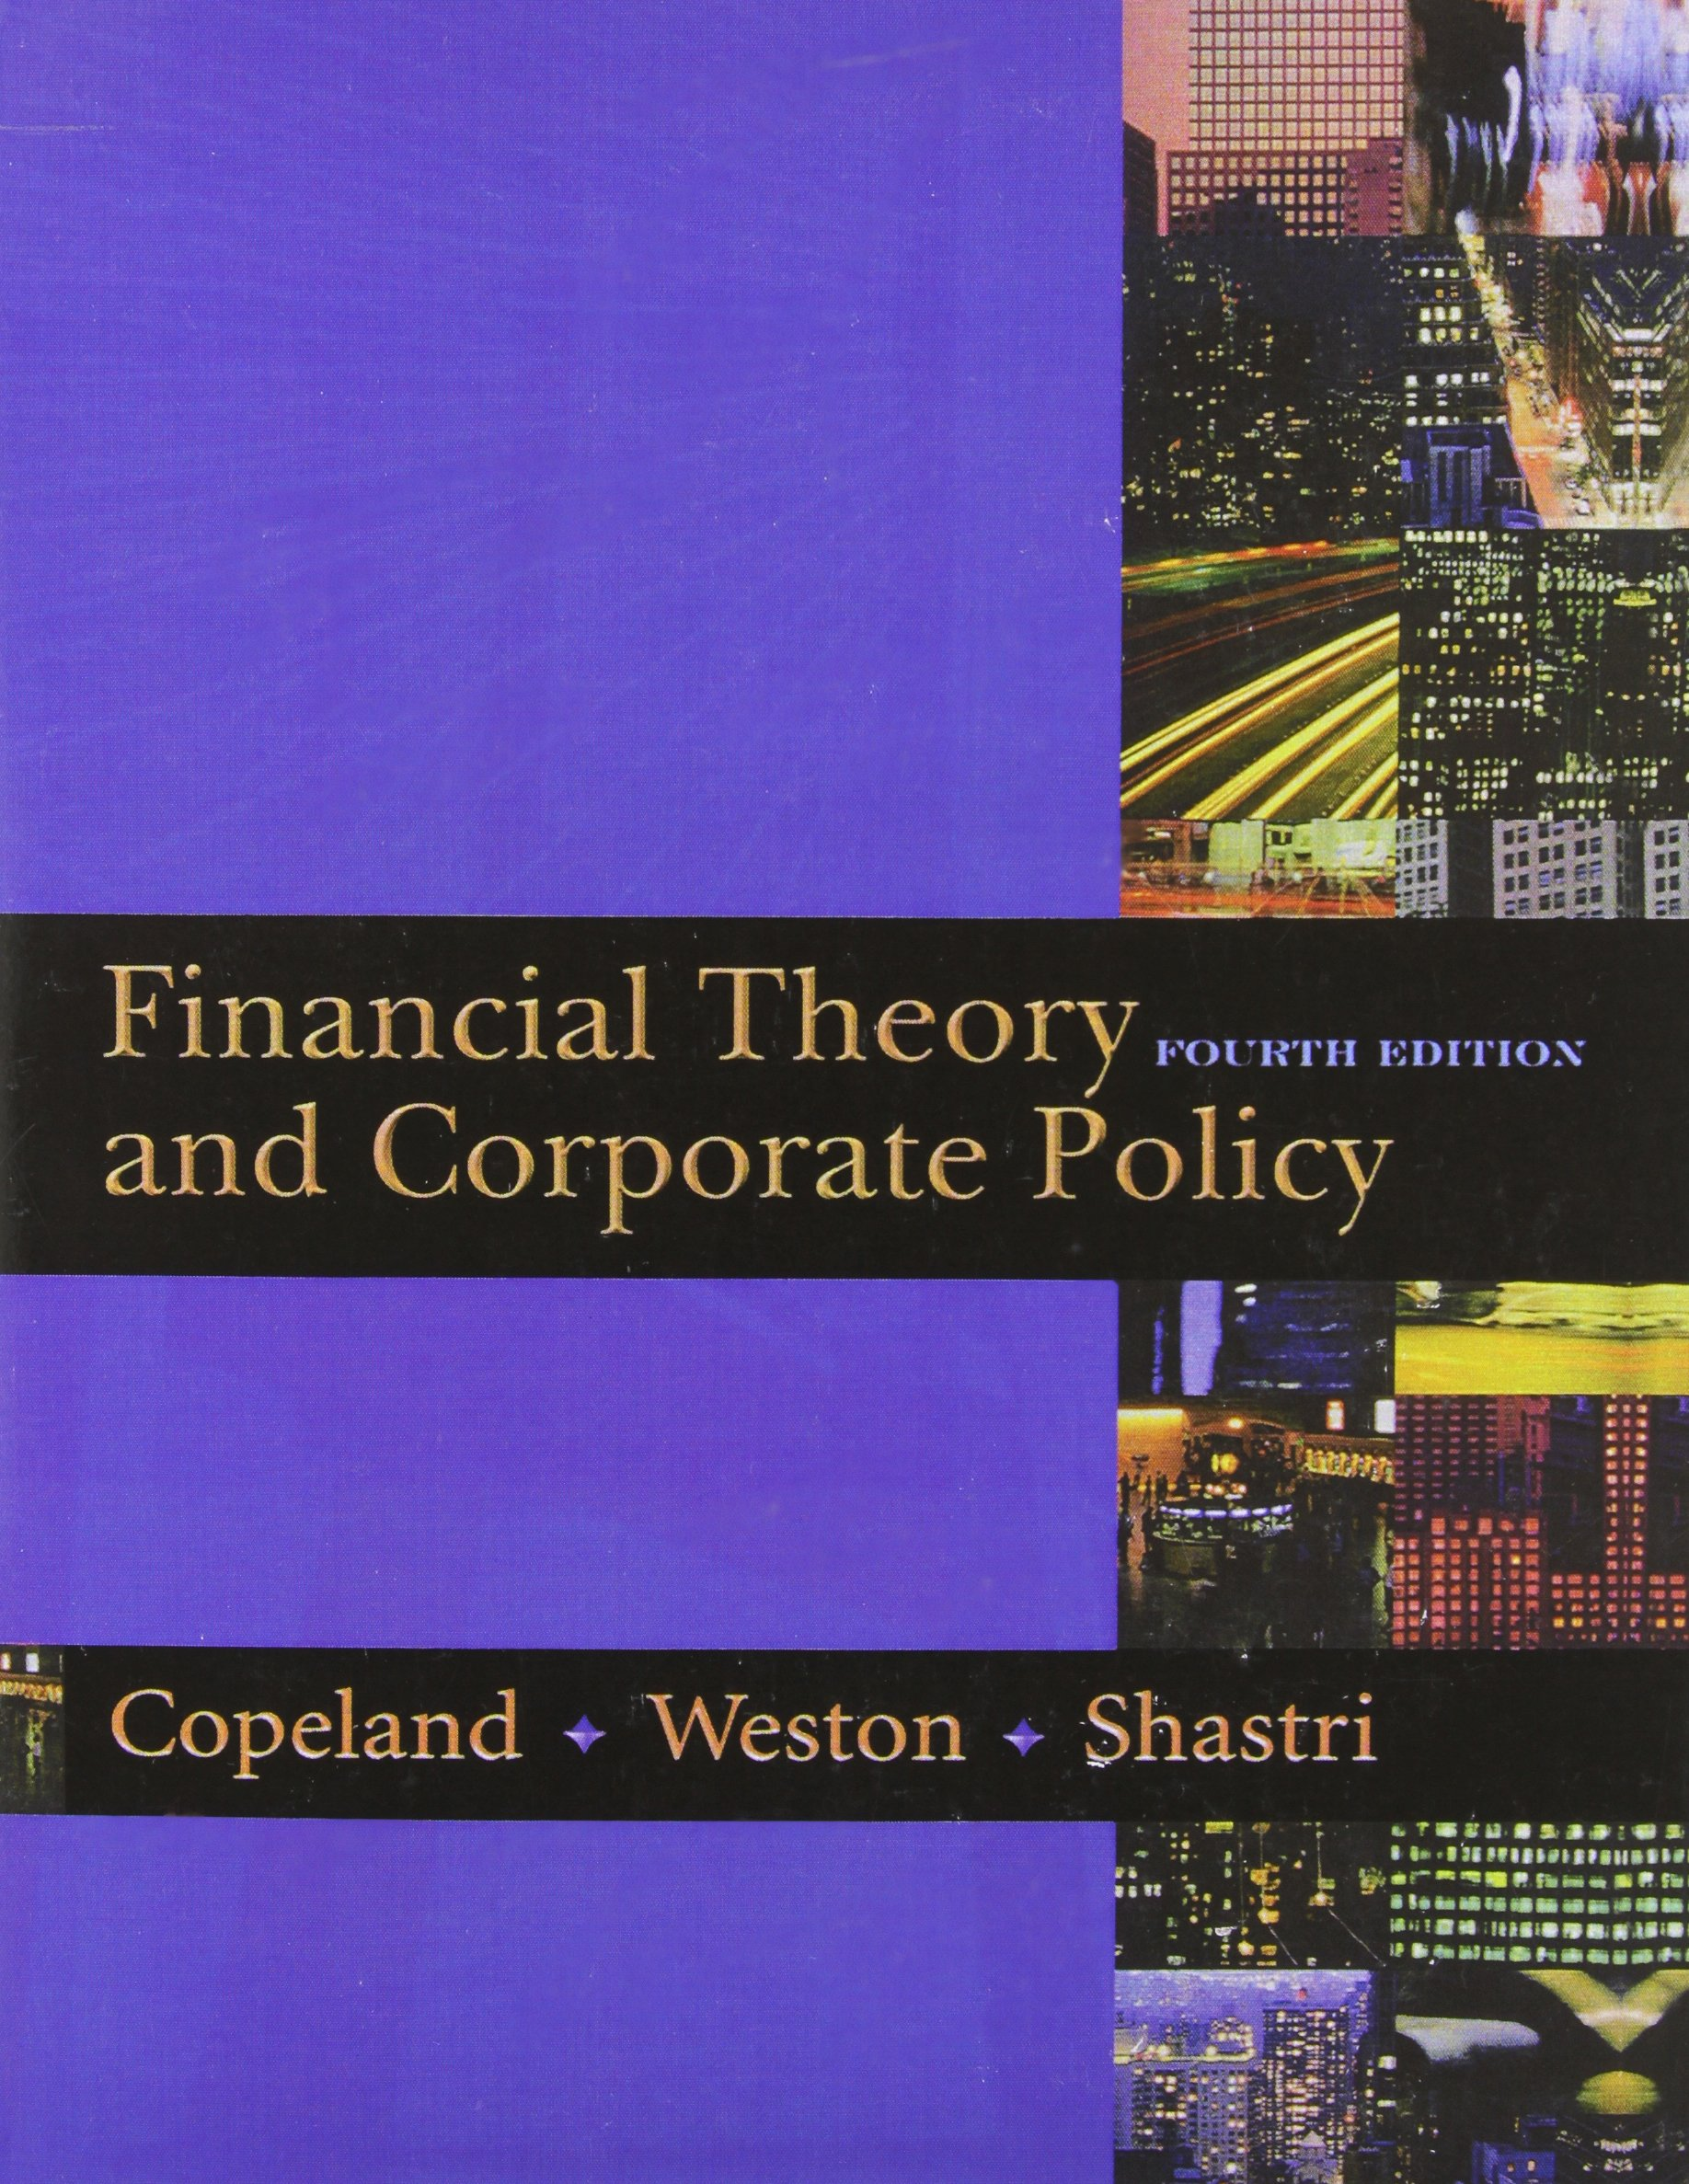 COPELAND: FIN THEORY CORP POLICY _c4 (4th Edition) by Pearson